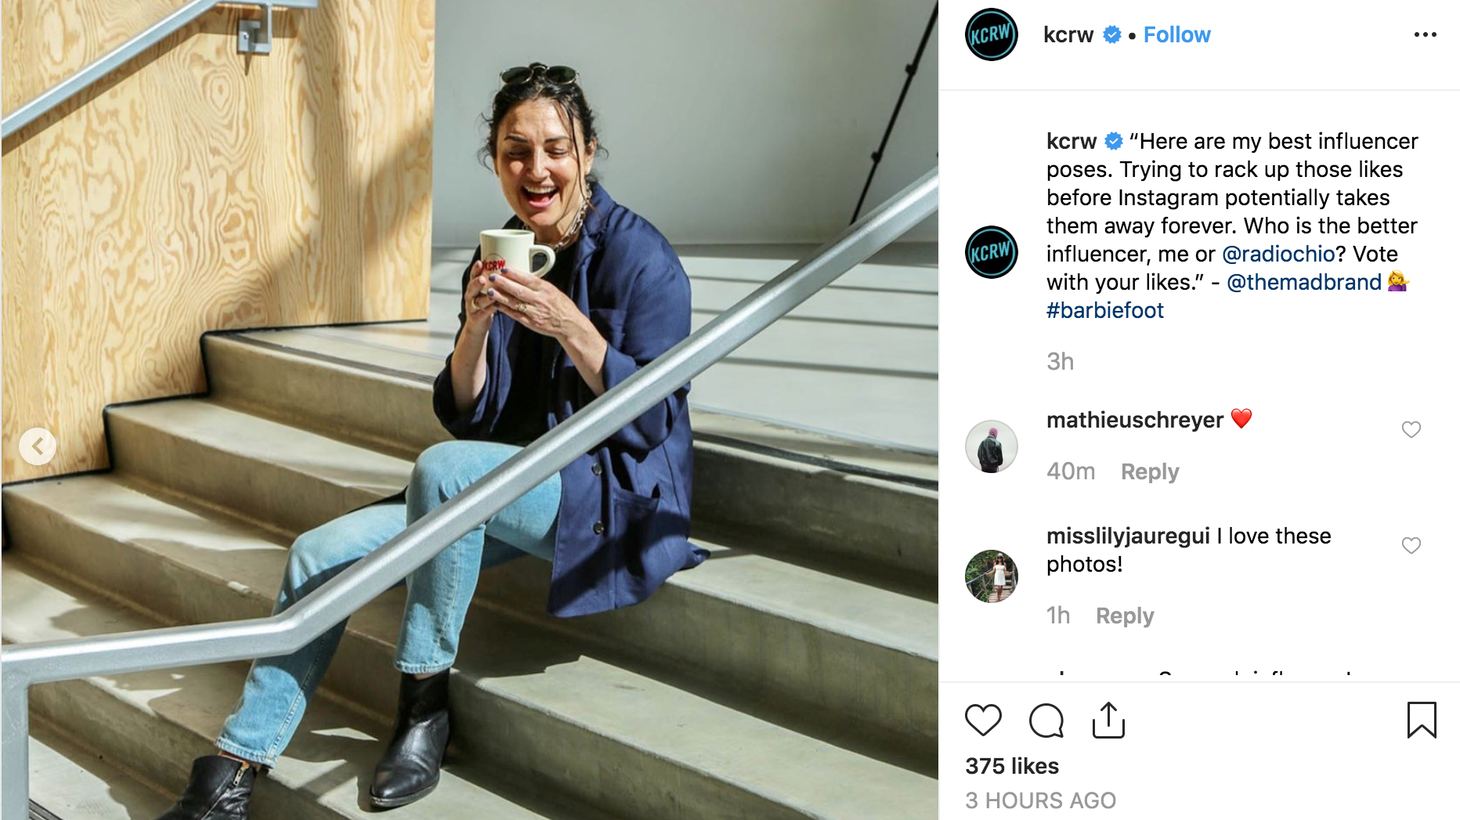 KCRW Press Play's Madeleine Brand goes head to head with Steve Chiotakis in taking the best Instagram influencer pics.